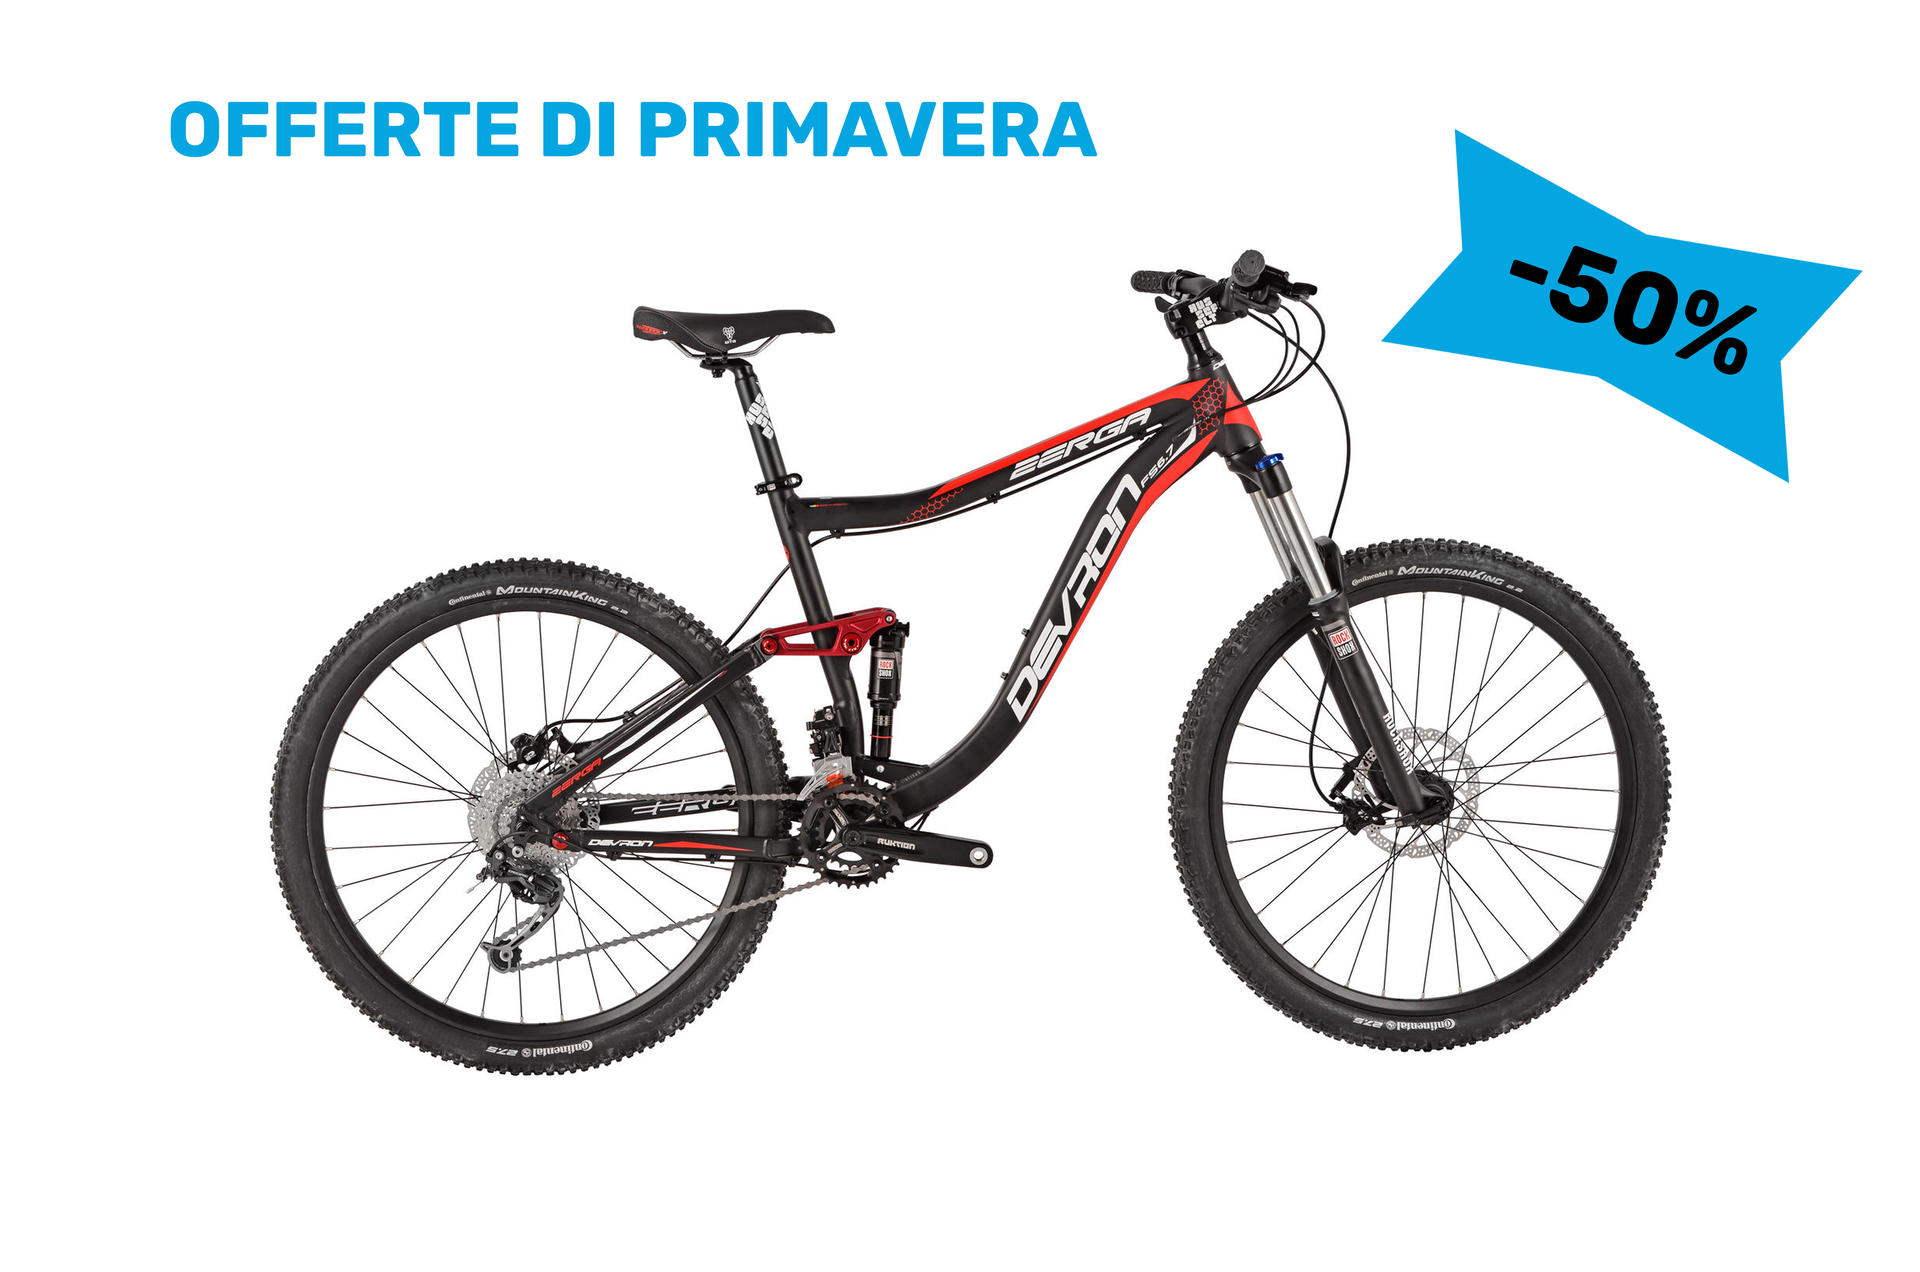 Mountain bike full suspension Devron Zerga FS6,7 430 mm  Black-Red